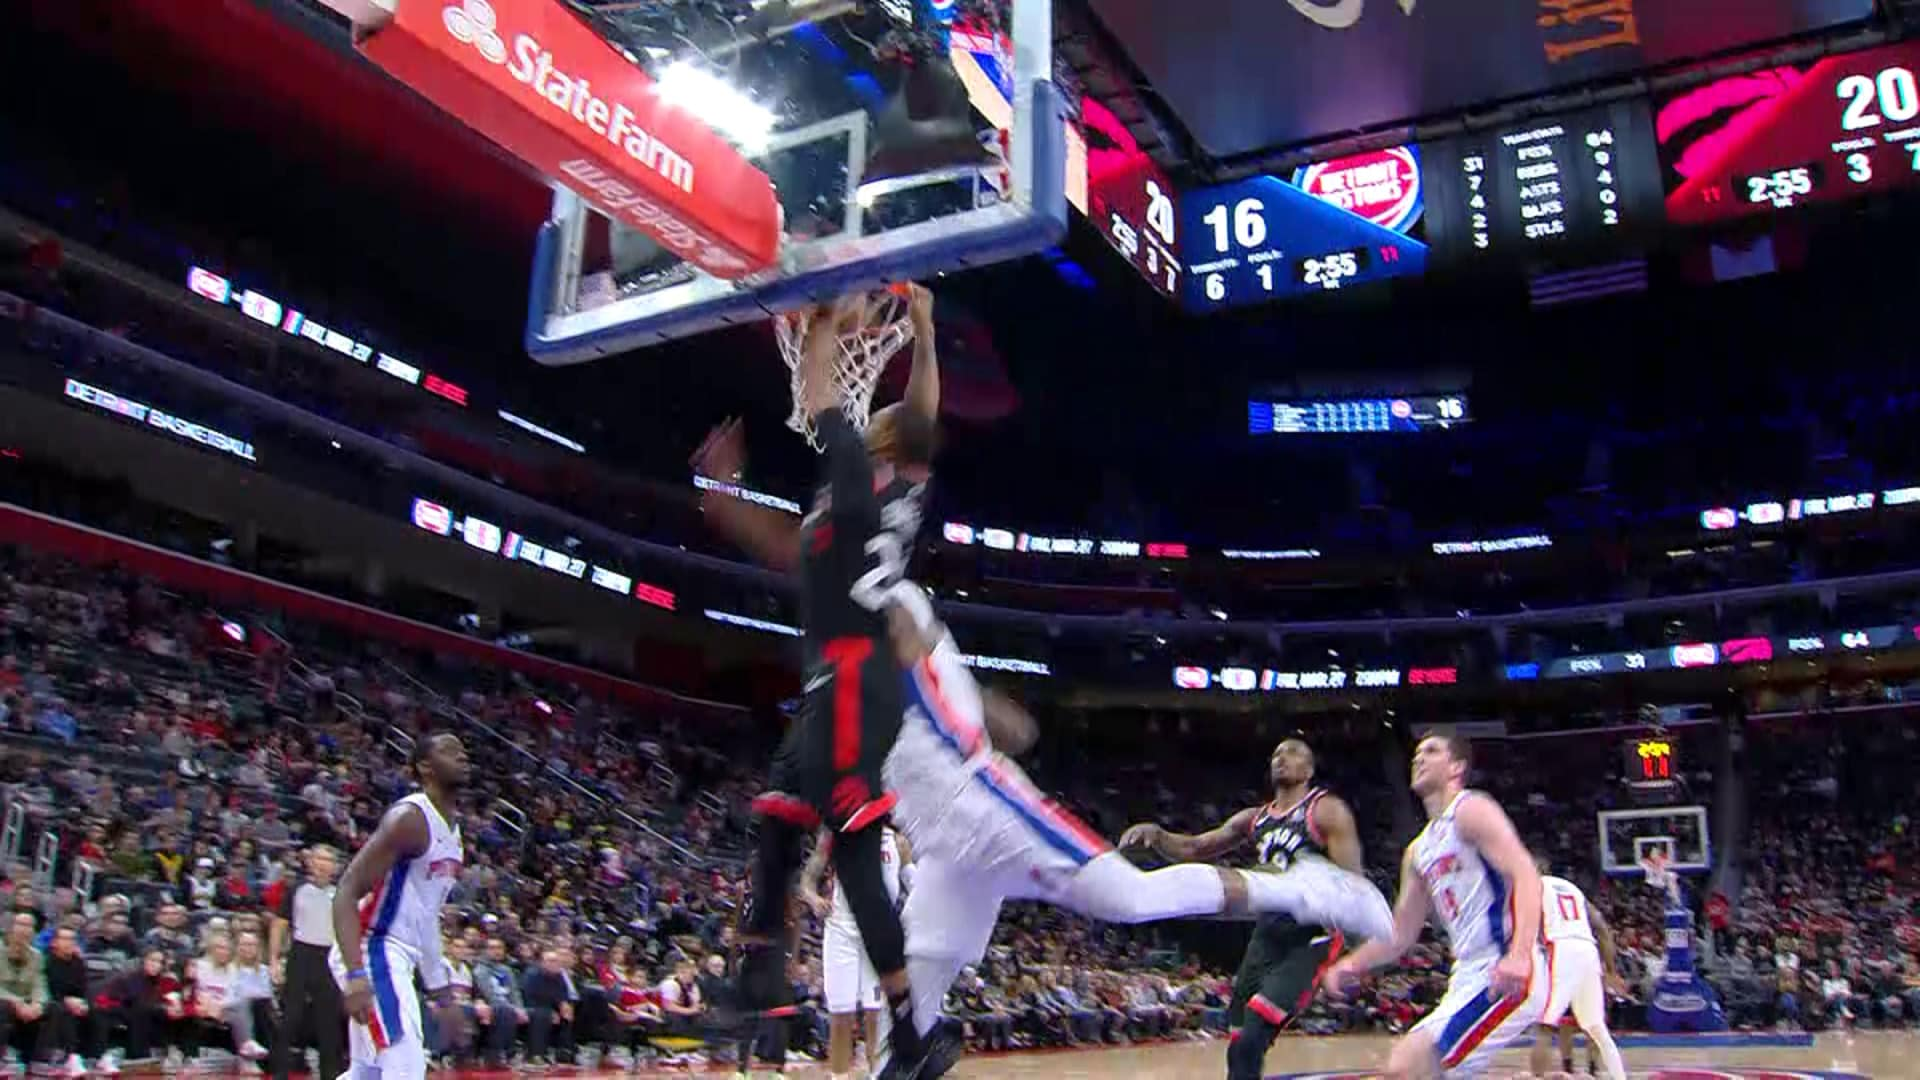 Raptors Highlights: Powell Dunk - January 31, 2020